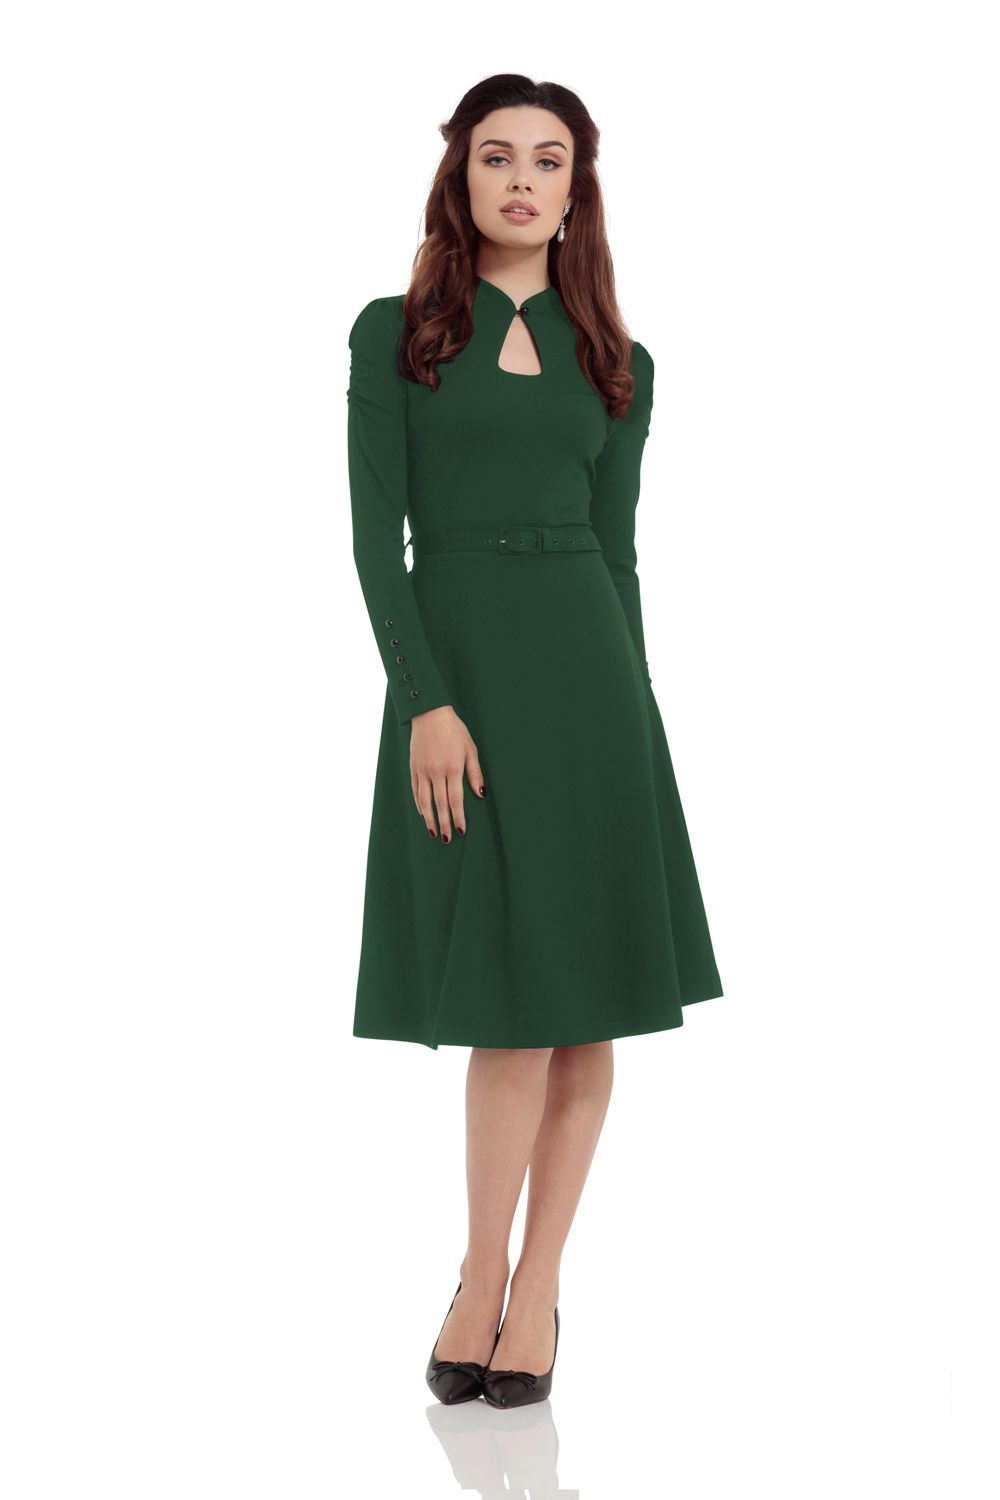 Dita 50s Flared Green Dress with Cut-out